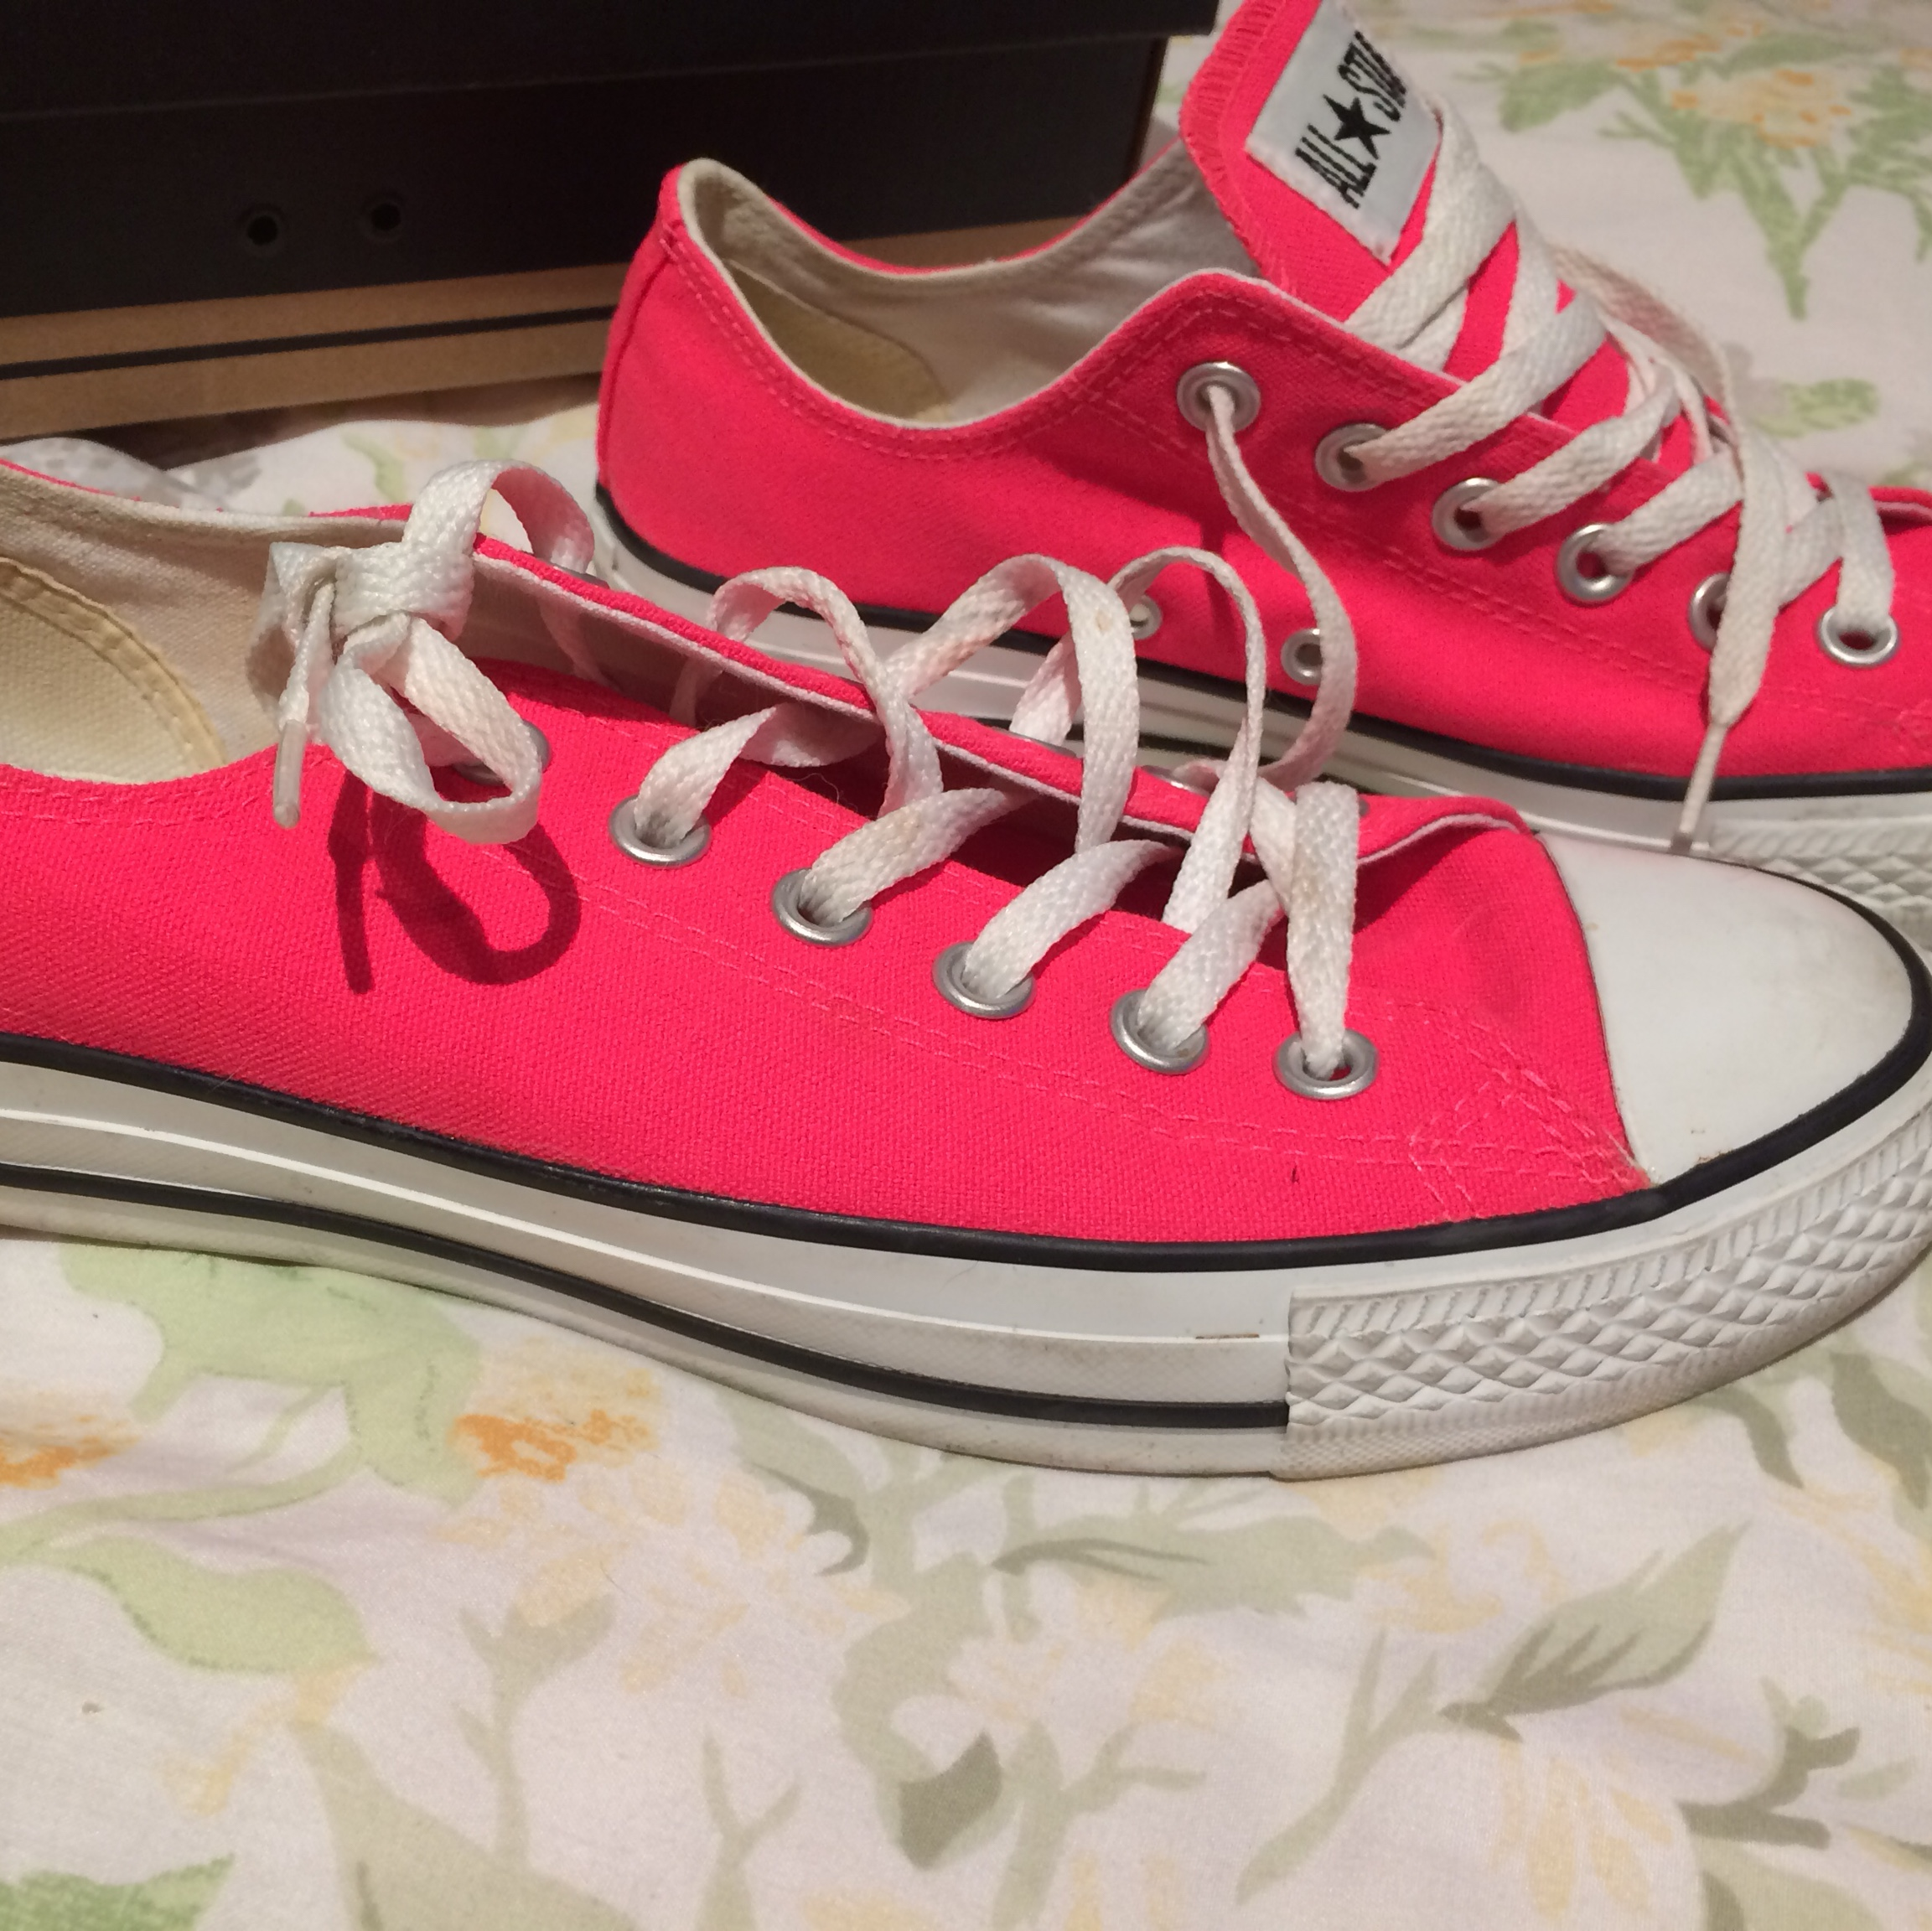 d0fc38f7e681 Bright pink ladies converse. I have only worn these once. 39 - Depop